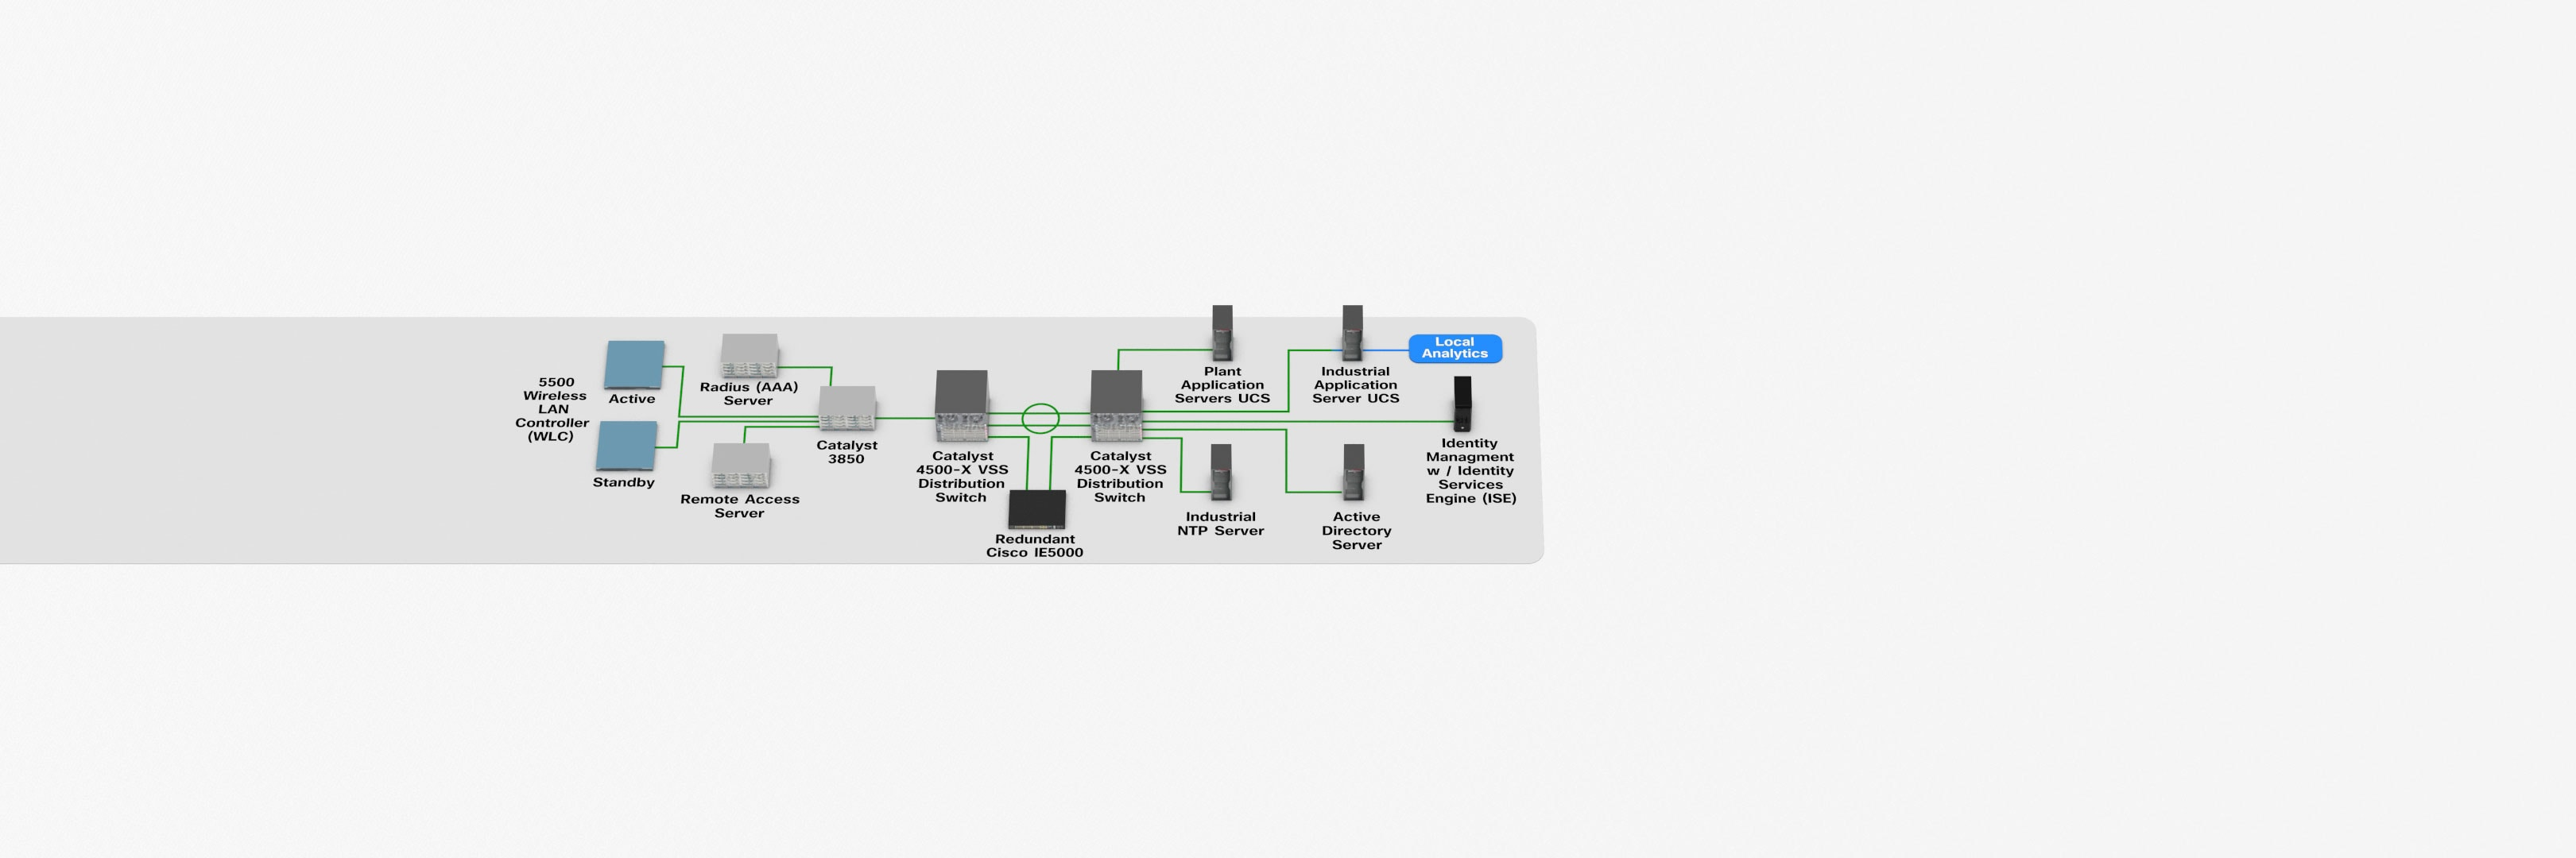 Interactive Architecture Maps For Manufacturing Ideal Circuit Breaker Lockout System Prevents Unauthorized Use Site Operations Zone